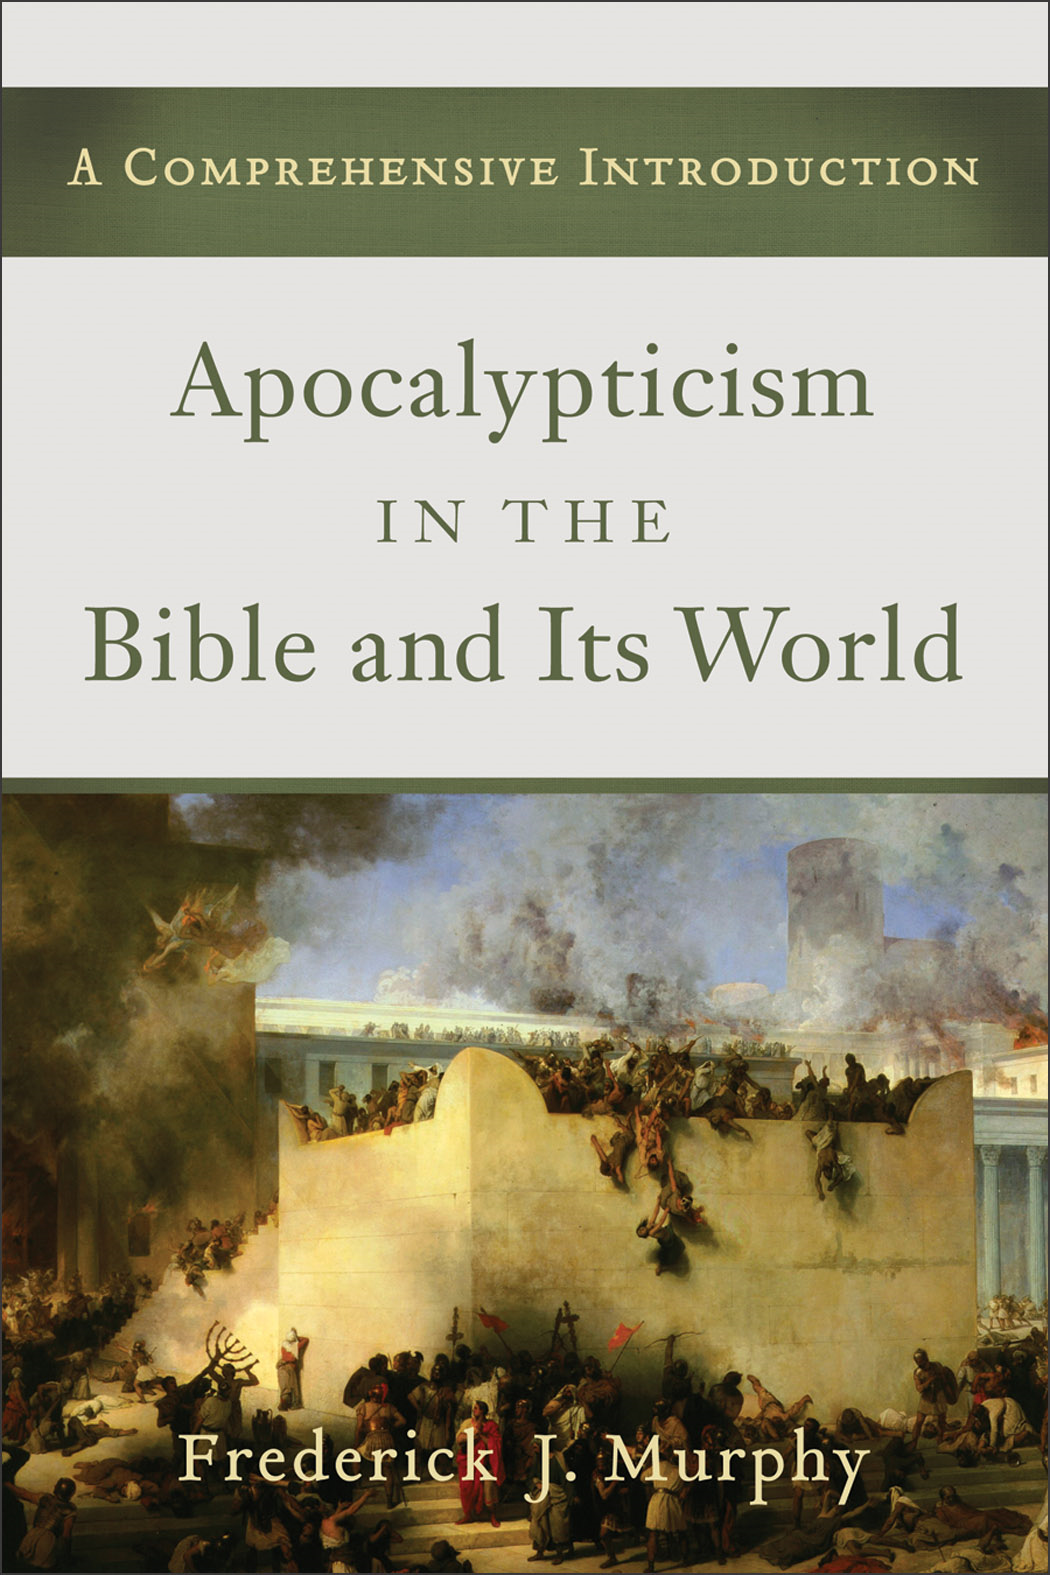 Apocalypticism in the Bible and Its World By: Frederick J. Murphy